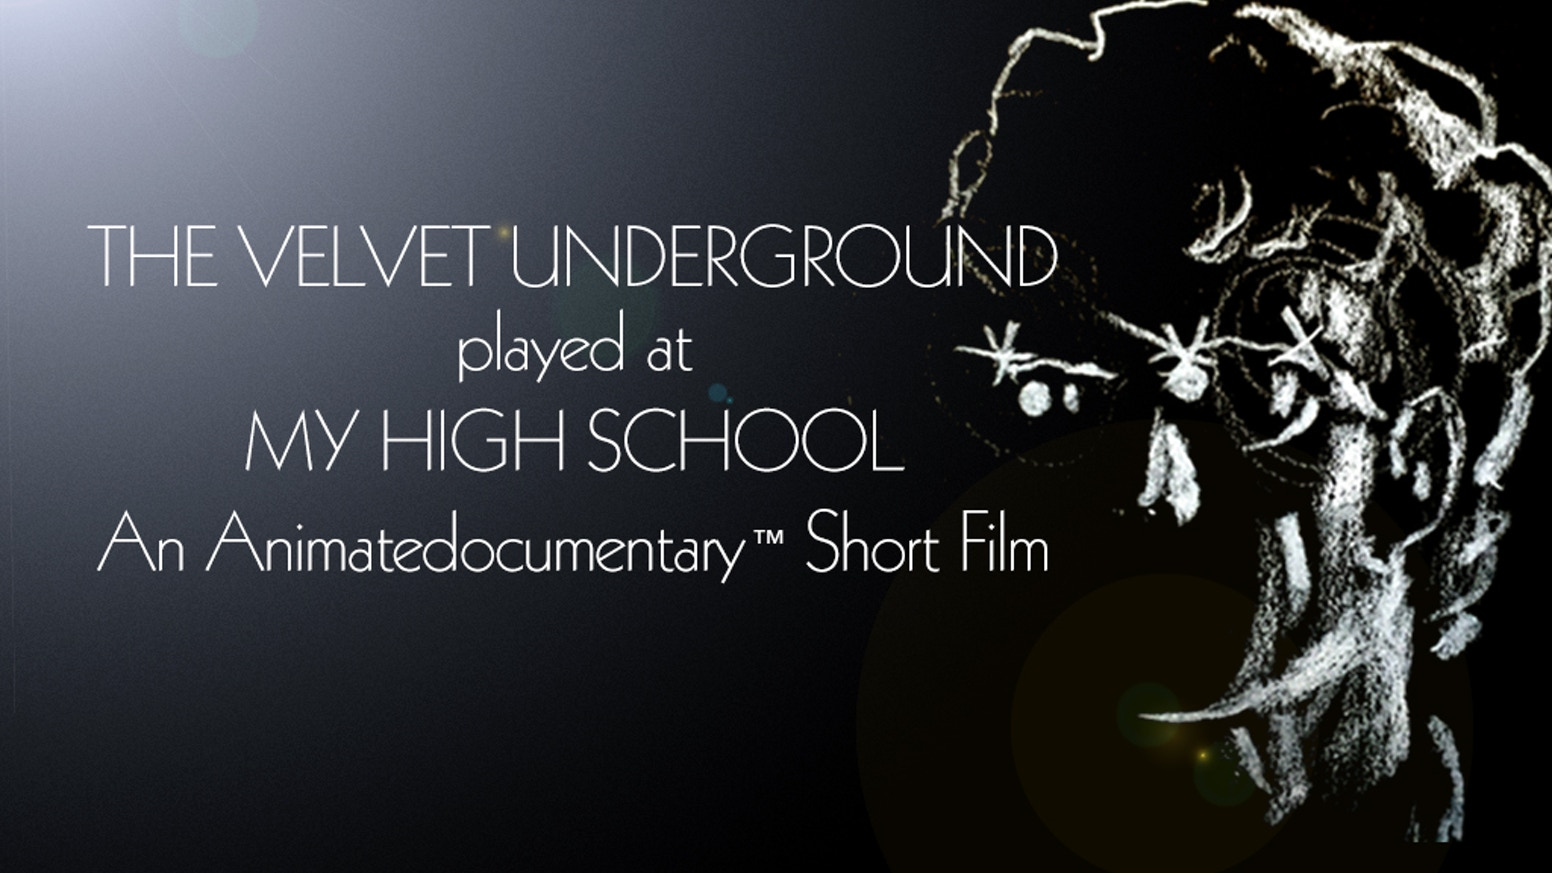 An animated short about the Velvet Underground's first gig in 1965 in front of a crowd of shocked kids at a suburban NJ high school.